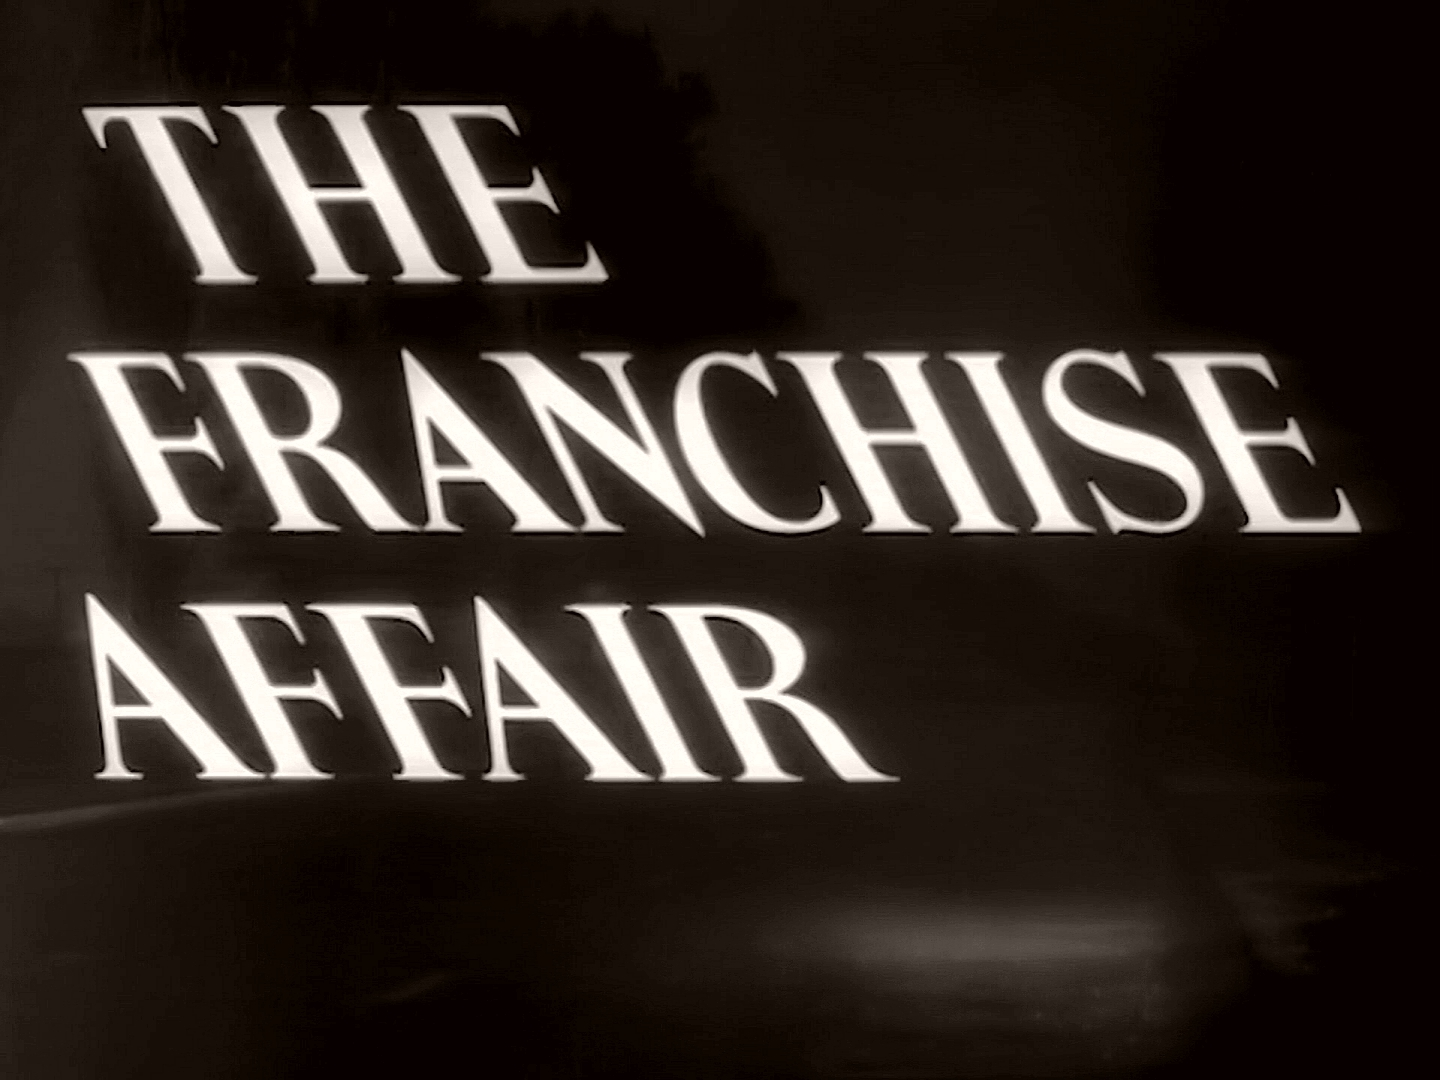 Main title from The Franchise Affair (1951) (1)